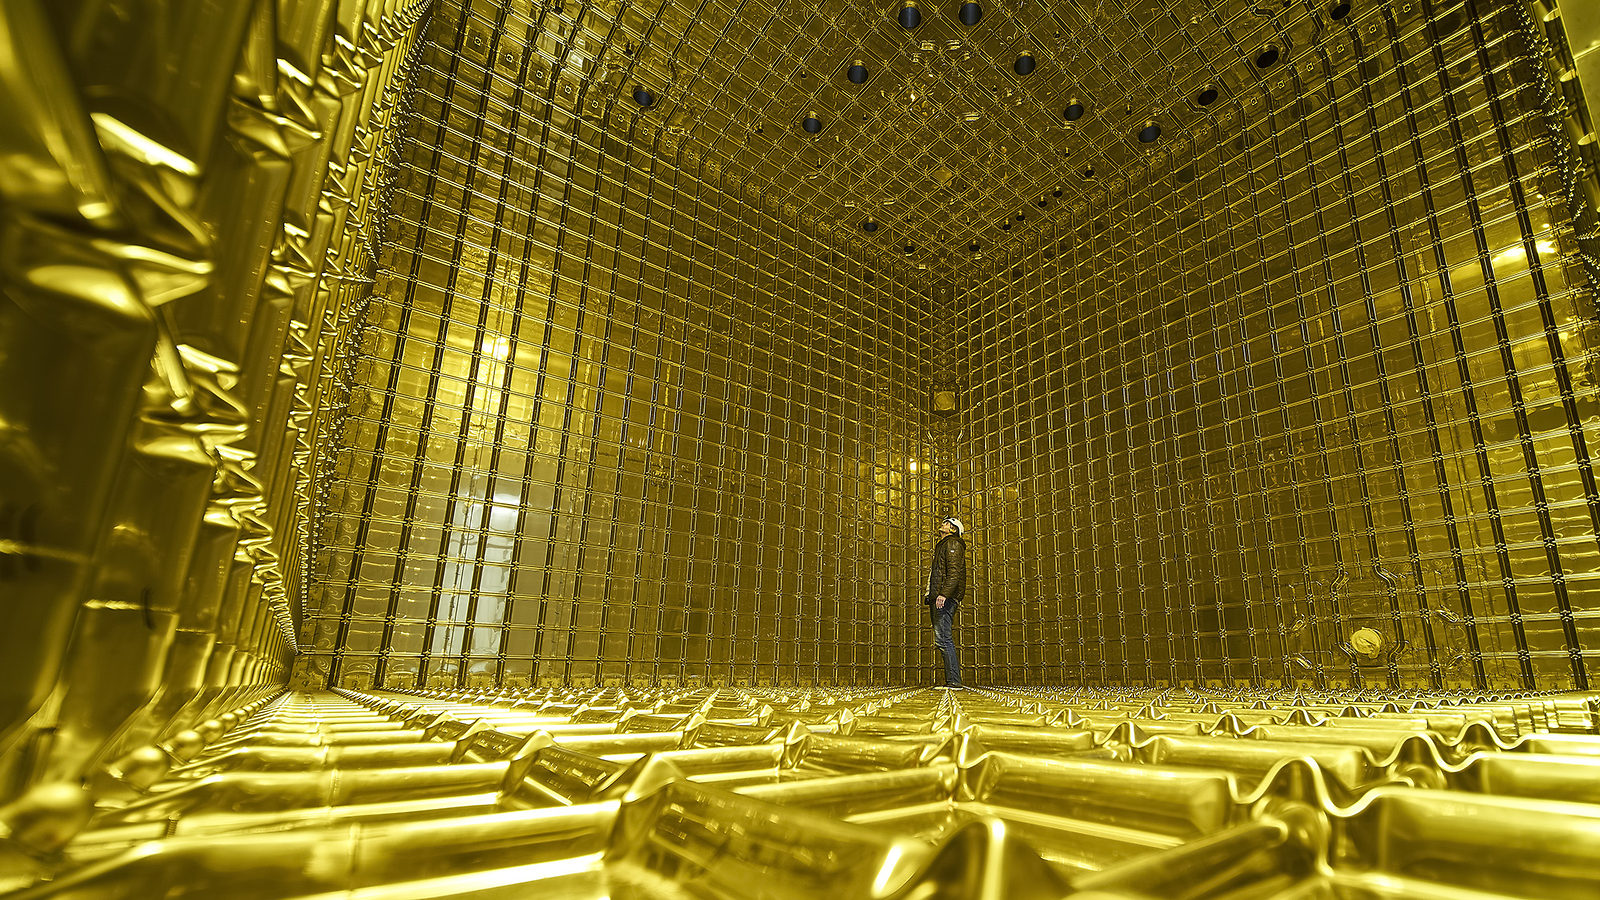 Photo of a person standing inside the ProtoDUNE detector, the walls, floor, and ceiling are all yellow